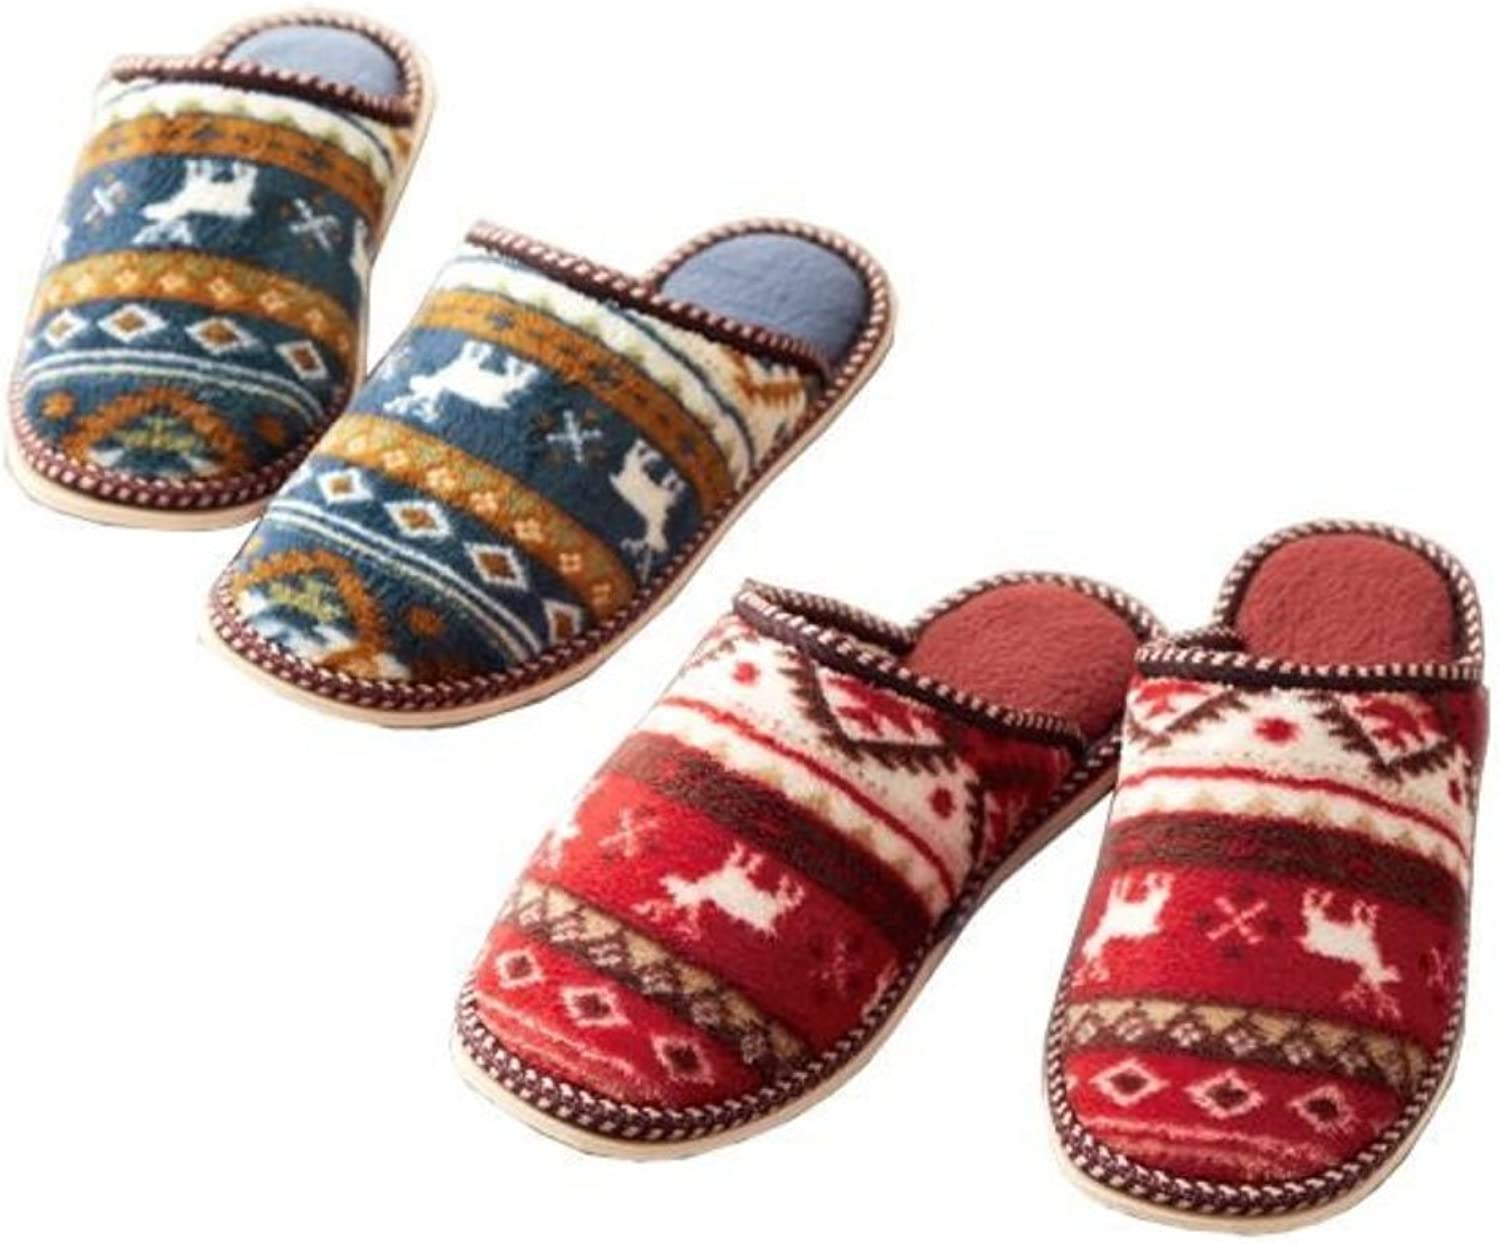 Comolife Nordic Warm & Comfortable Slippers 2 Pairs Set , Red & Navy bluee , Size   22.5-26 cm , US Size   Ladies   6-10.5 , Mens   4-8.5